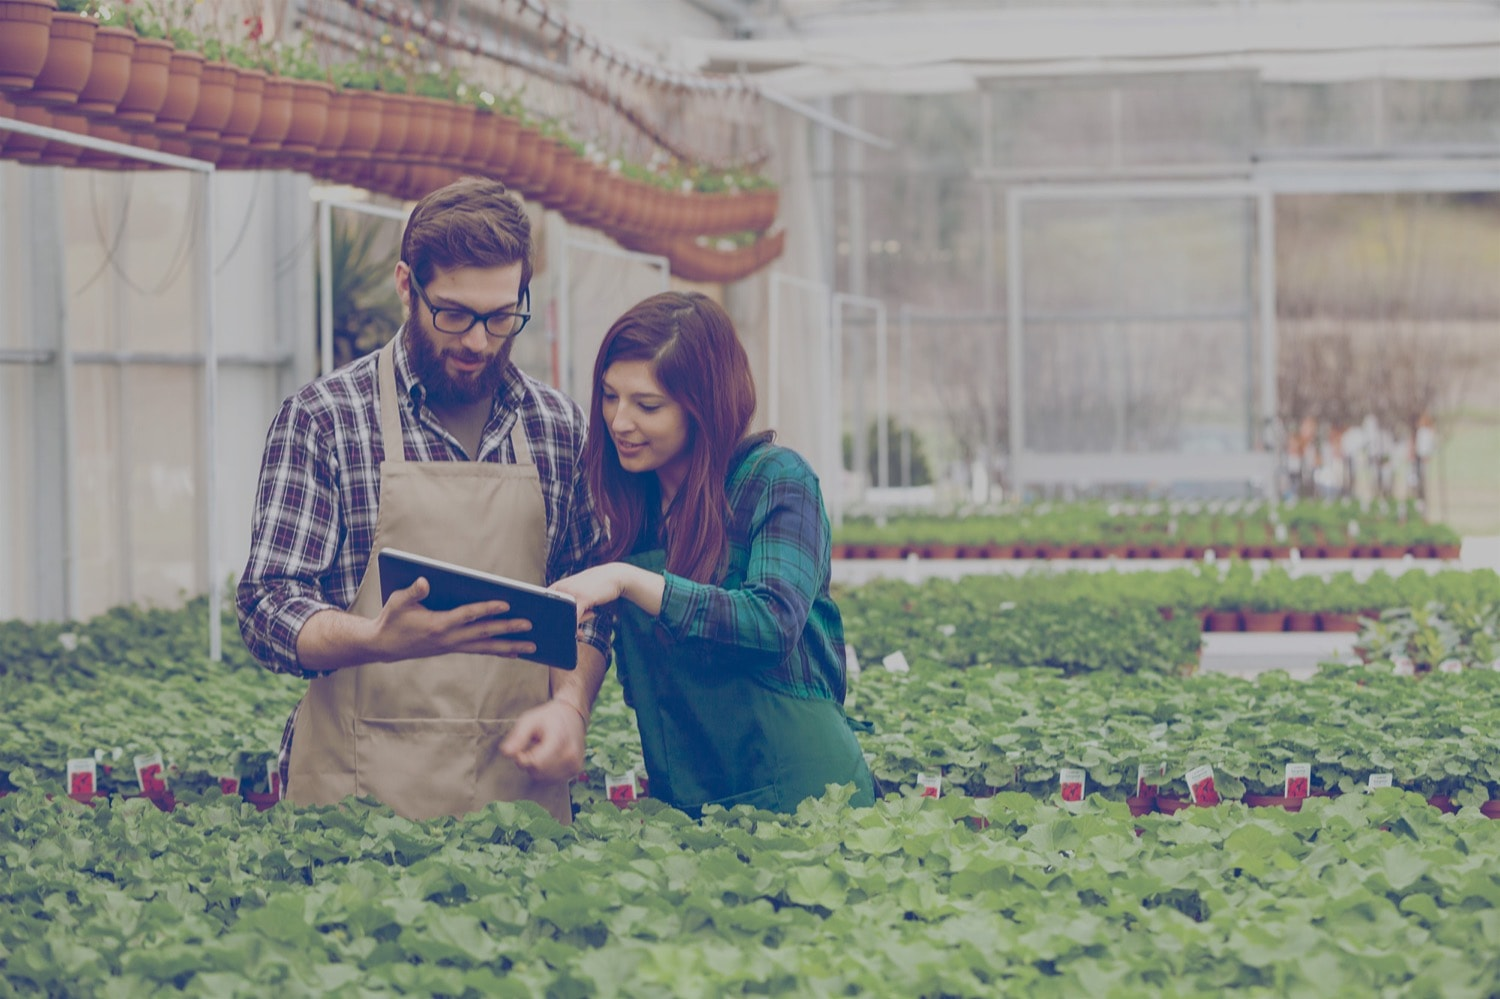 Two workers looking at a tablet inside a commercial greenhouse.